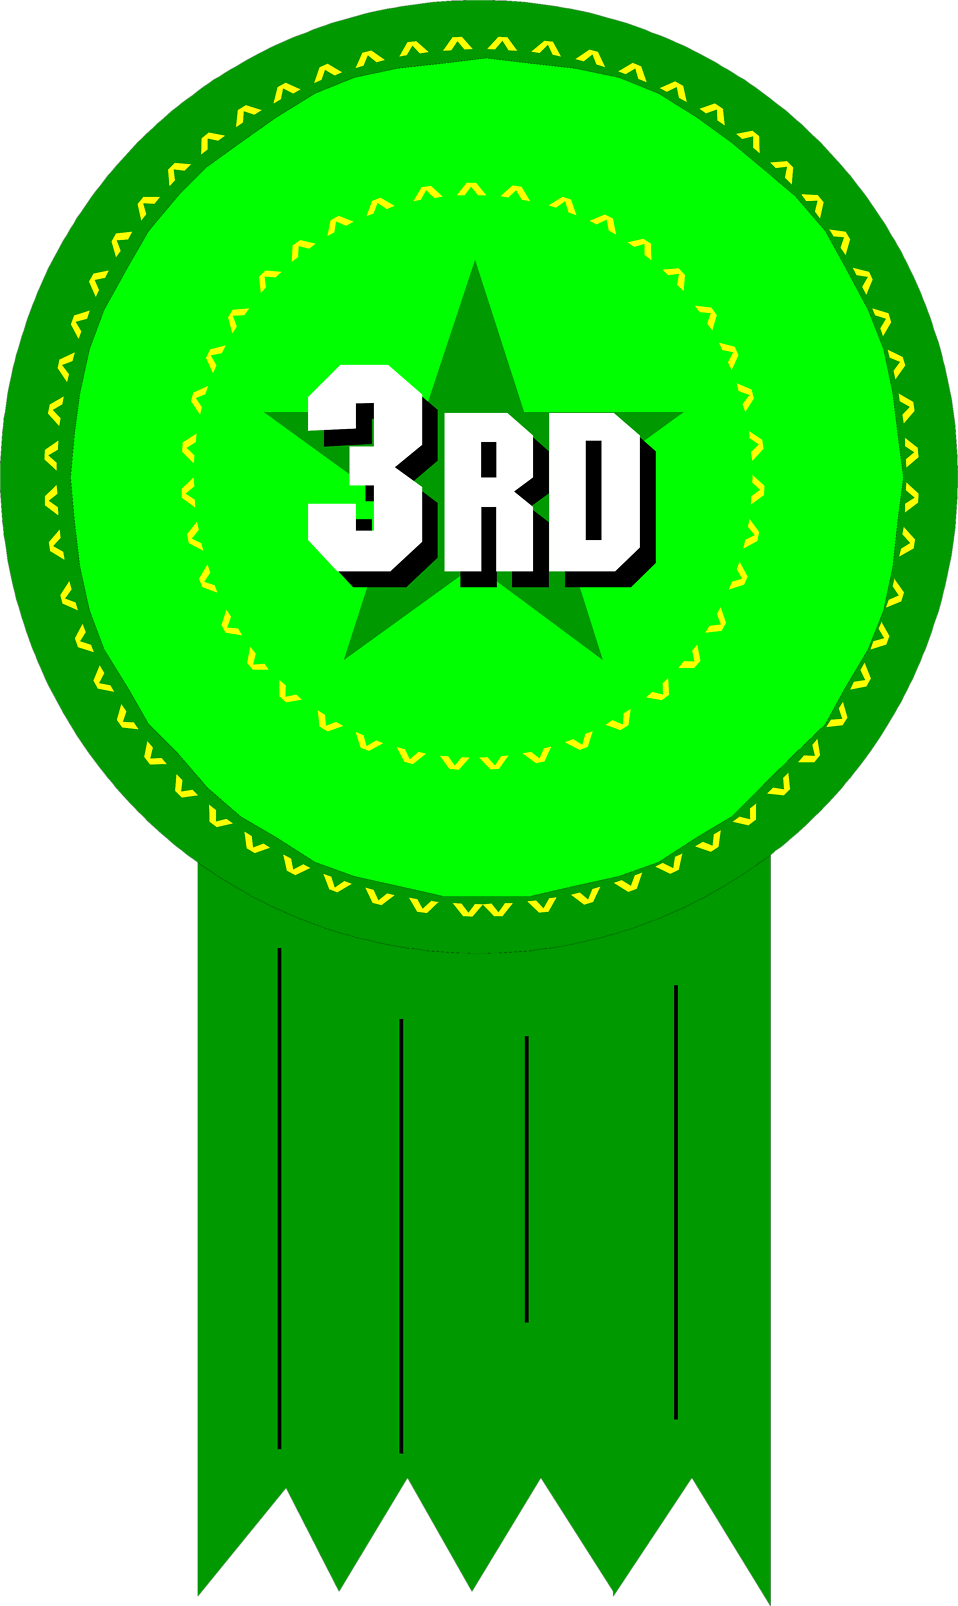 Award   Free Stock Photo   Illustration Of 3rd Place Ribbon     7943